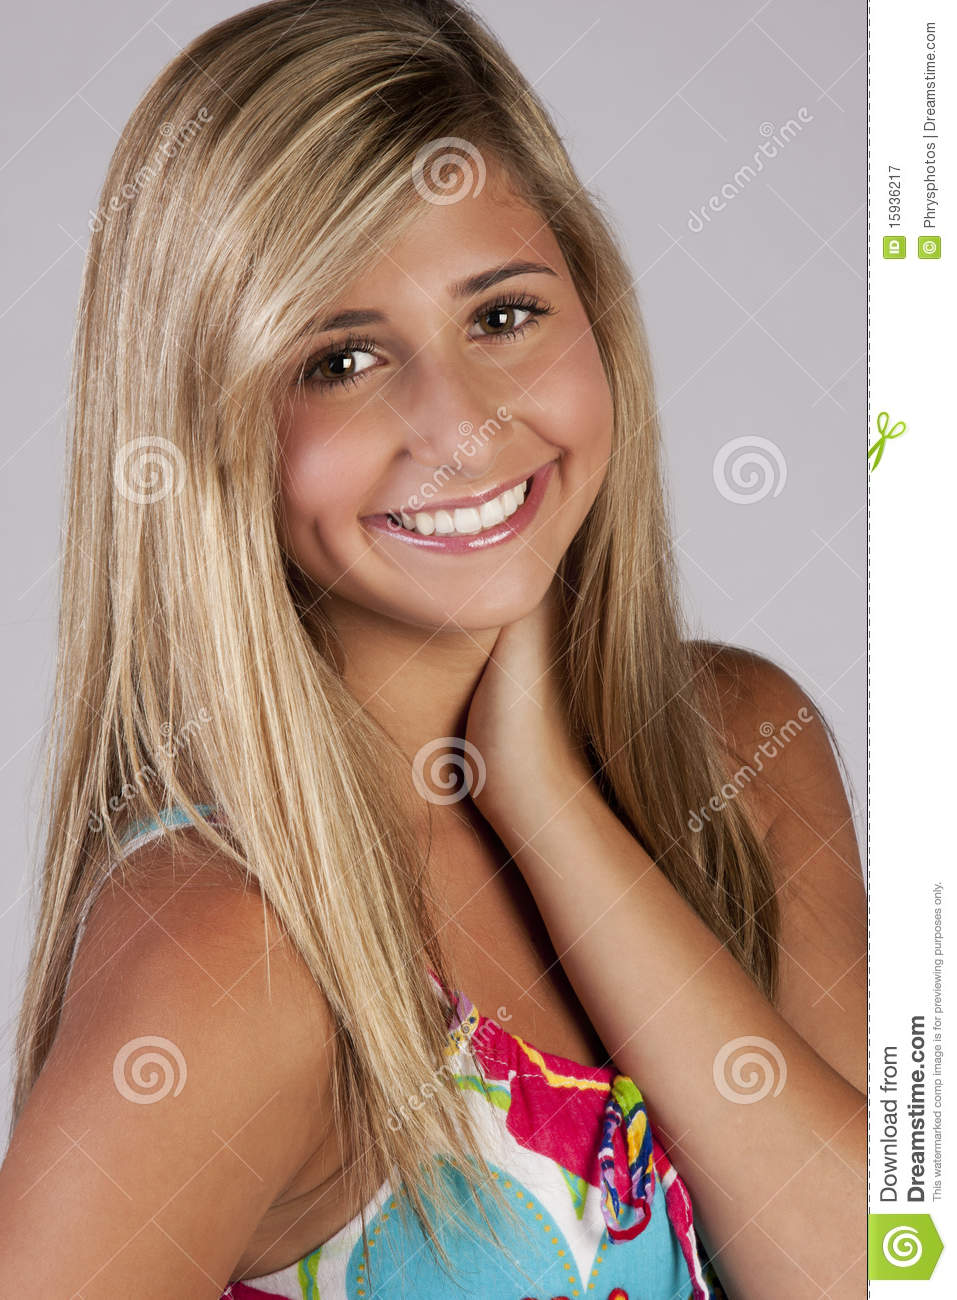 Cute Blond Teenage Girl Royalty Free Stock Photography: cute teenage girls pics